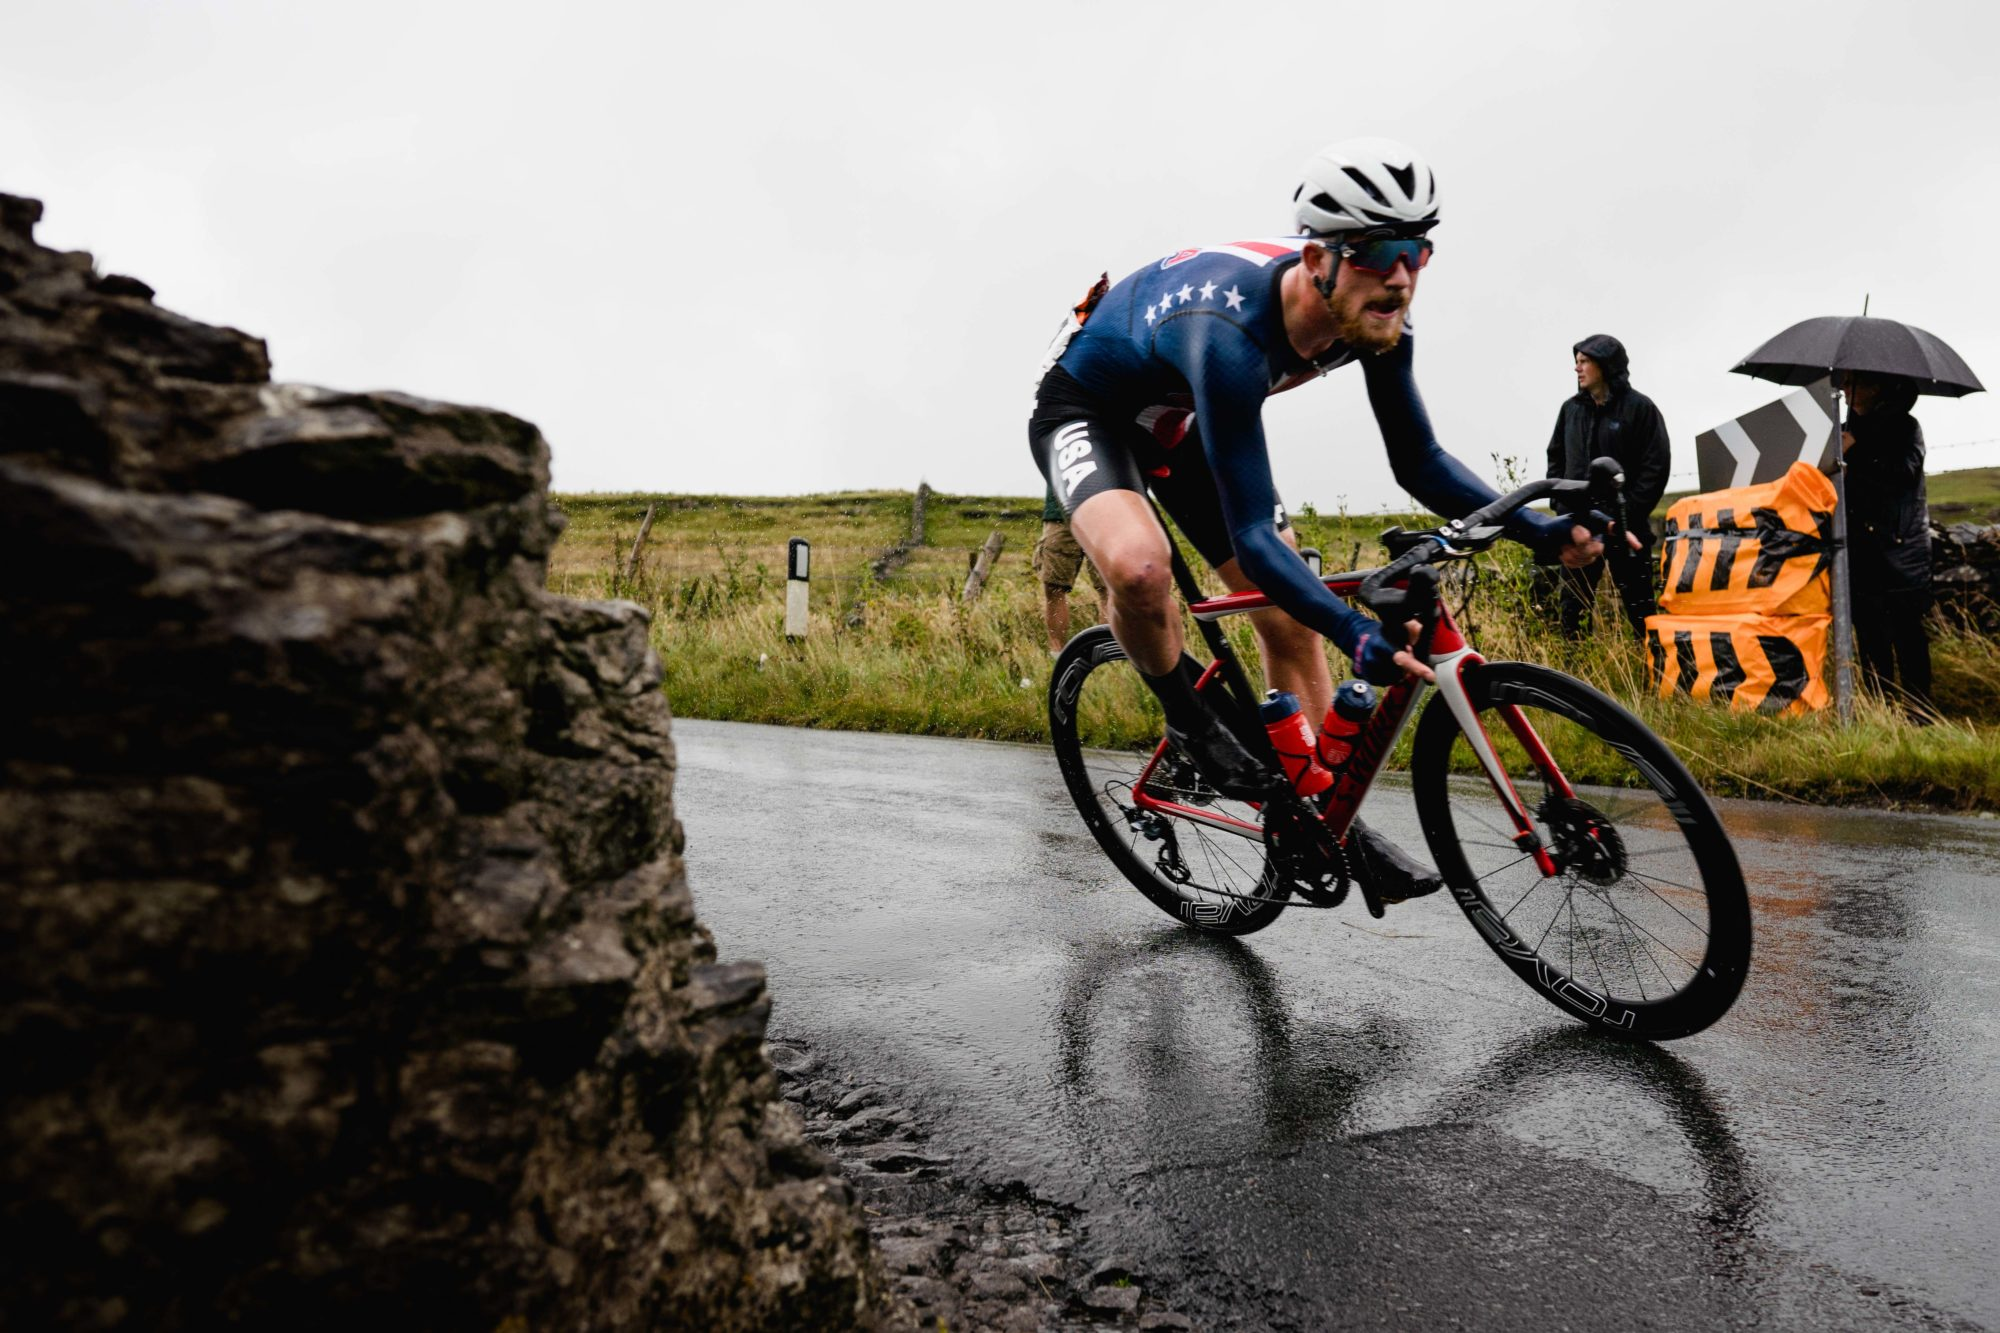 First month of riding a road bike Image from Yorkshire World Championships by Breakaway Digital